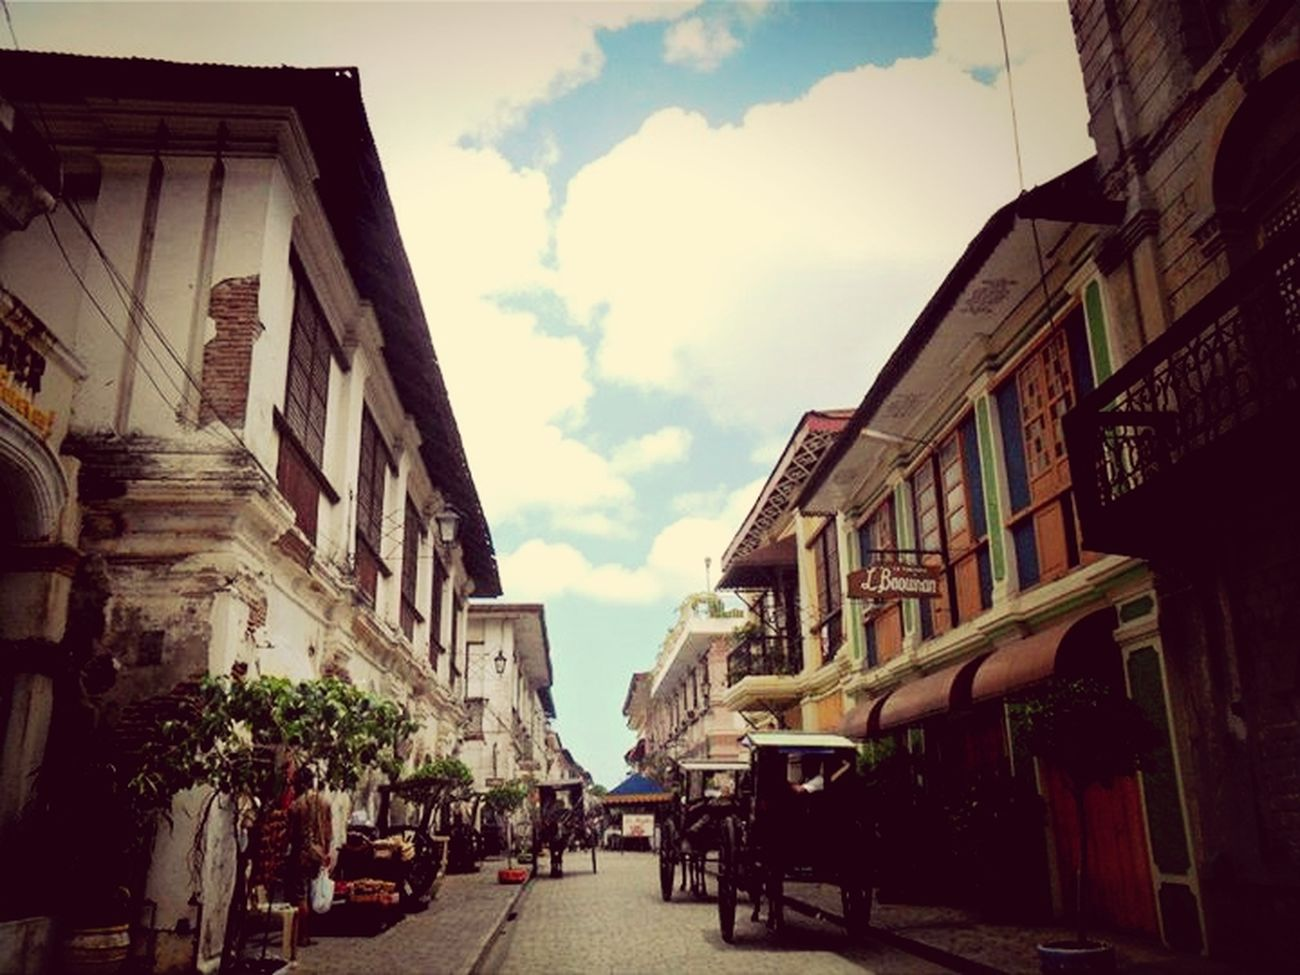 It felt like i was really there during its glory days Eyeem Philippines Vintageperfection